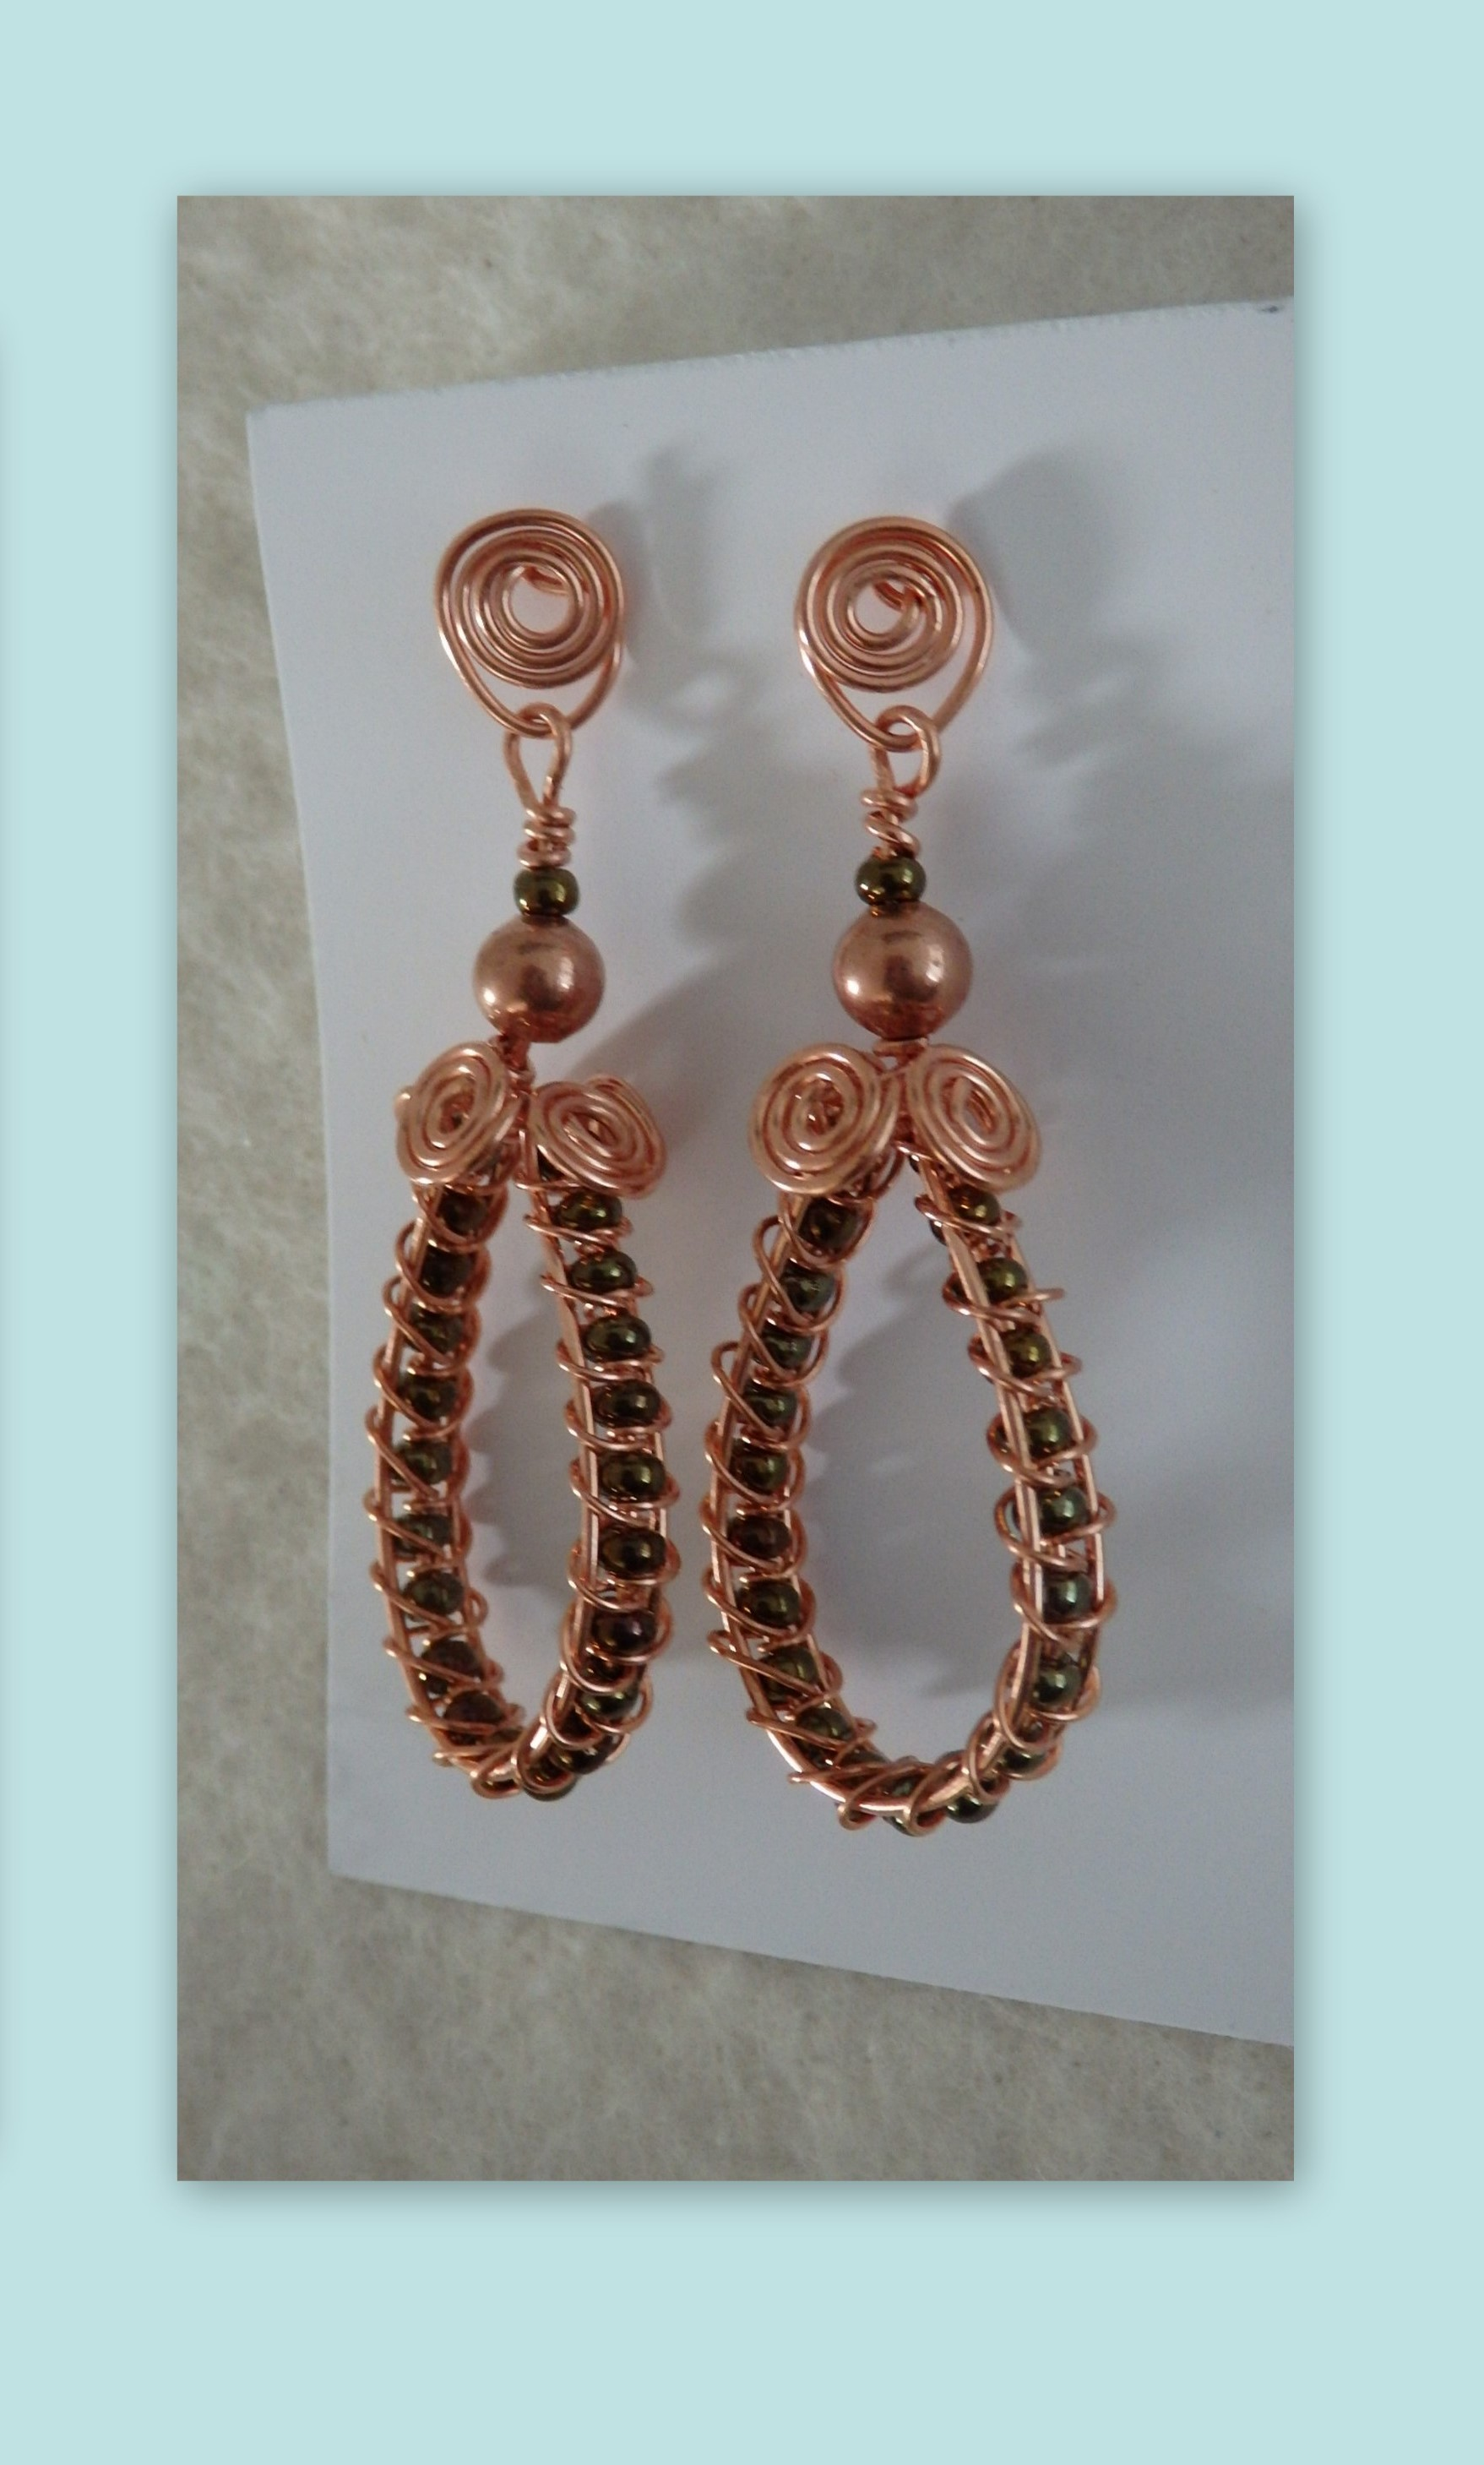 Woven copper with charcoal beads earrings